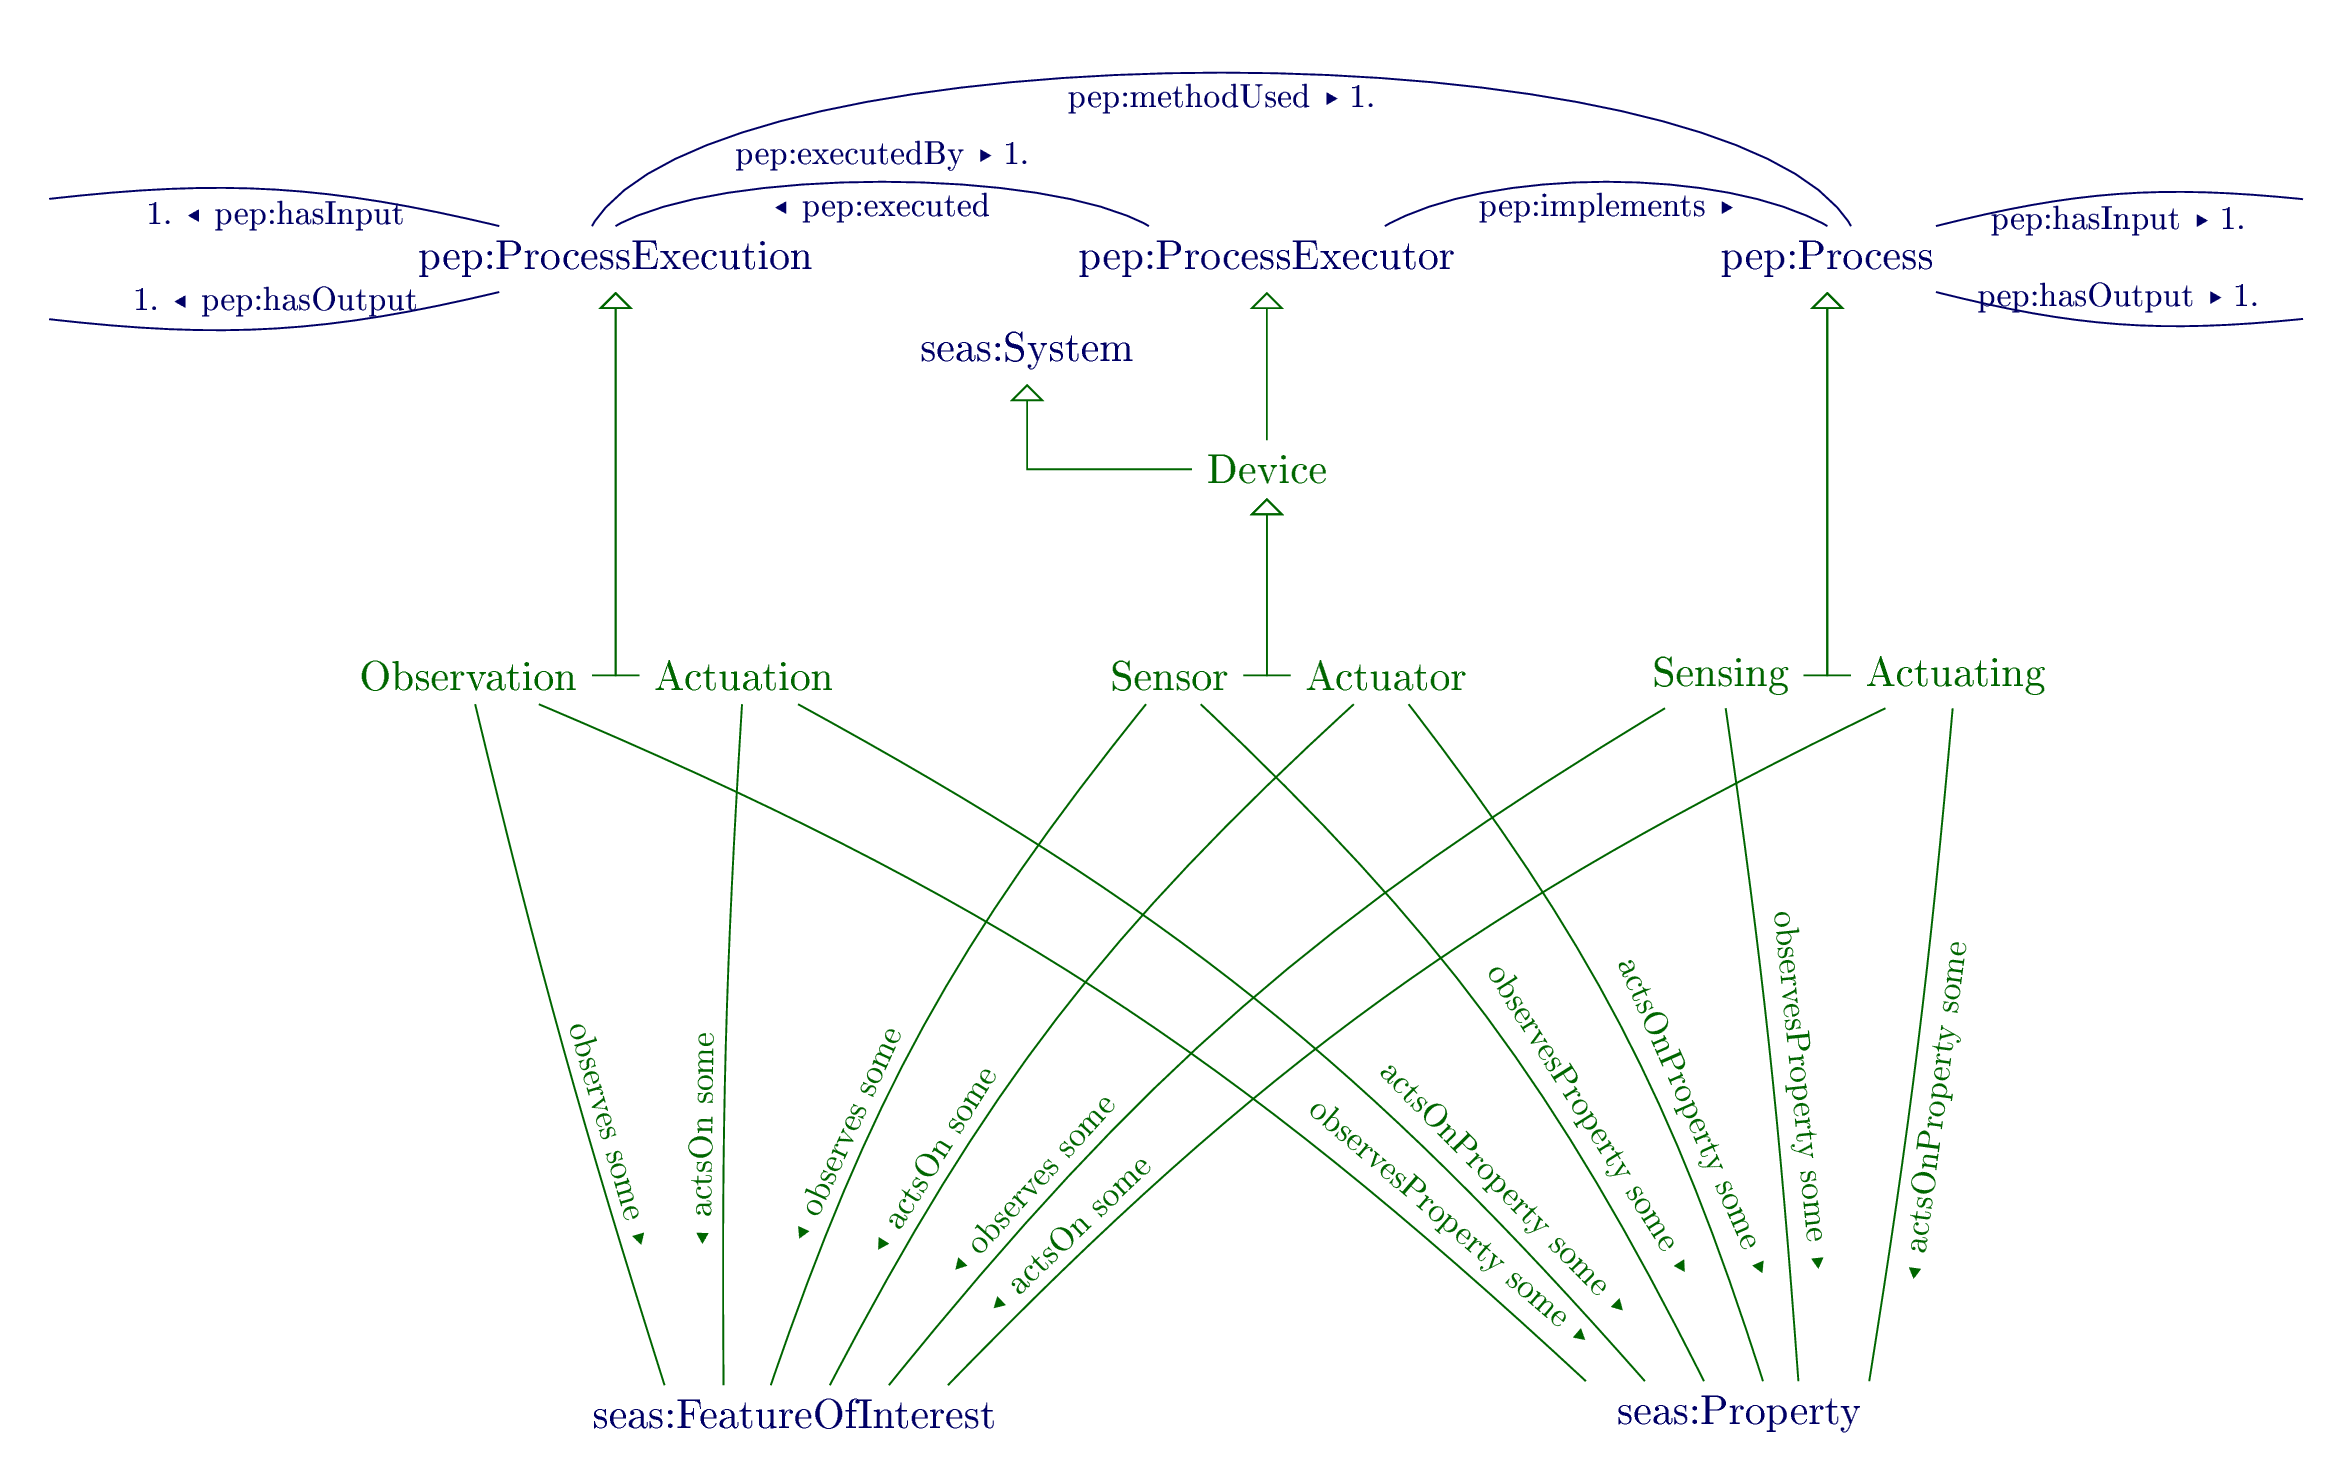 Overview of the Device ontology